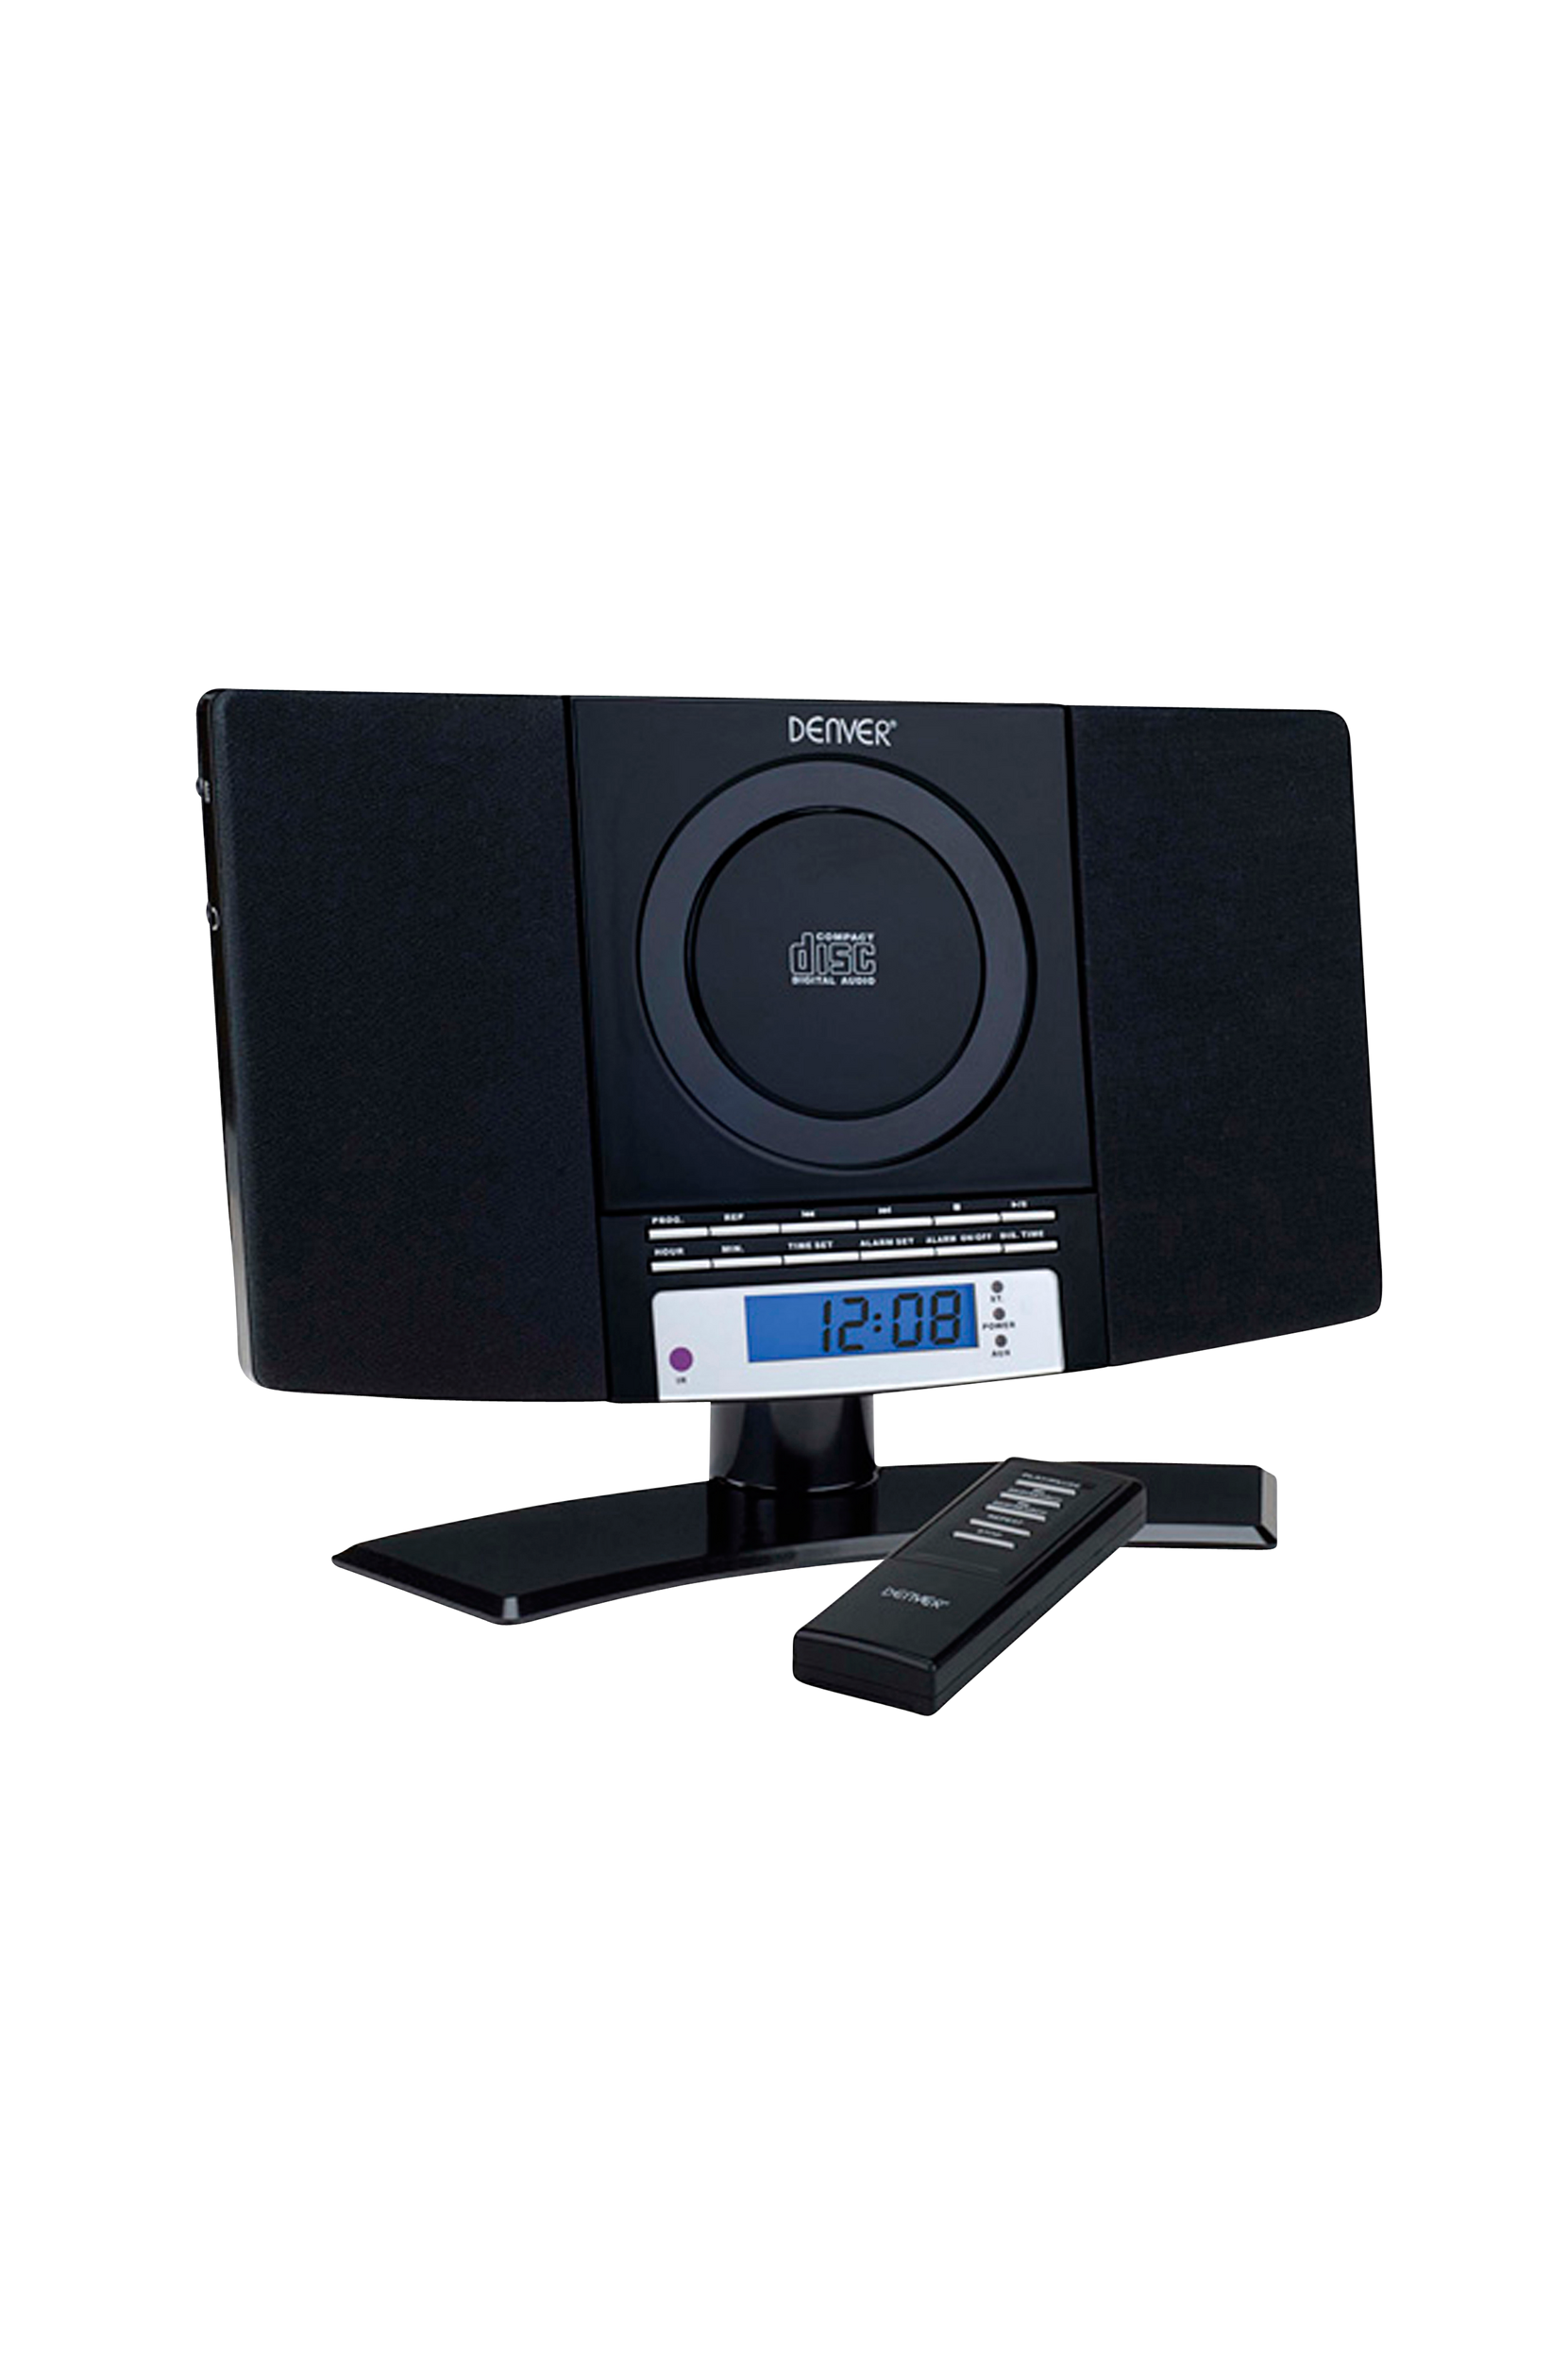 CD-radio, soitin (MC-5220)